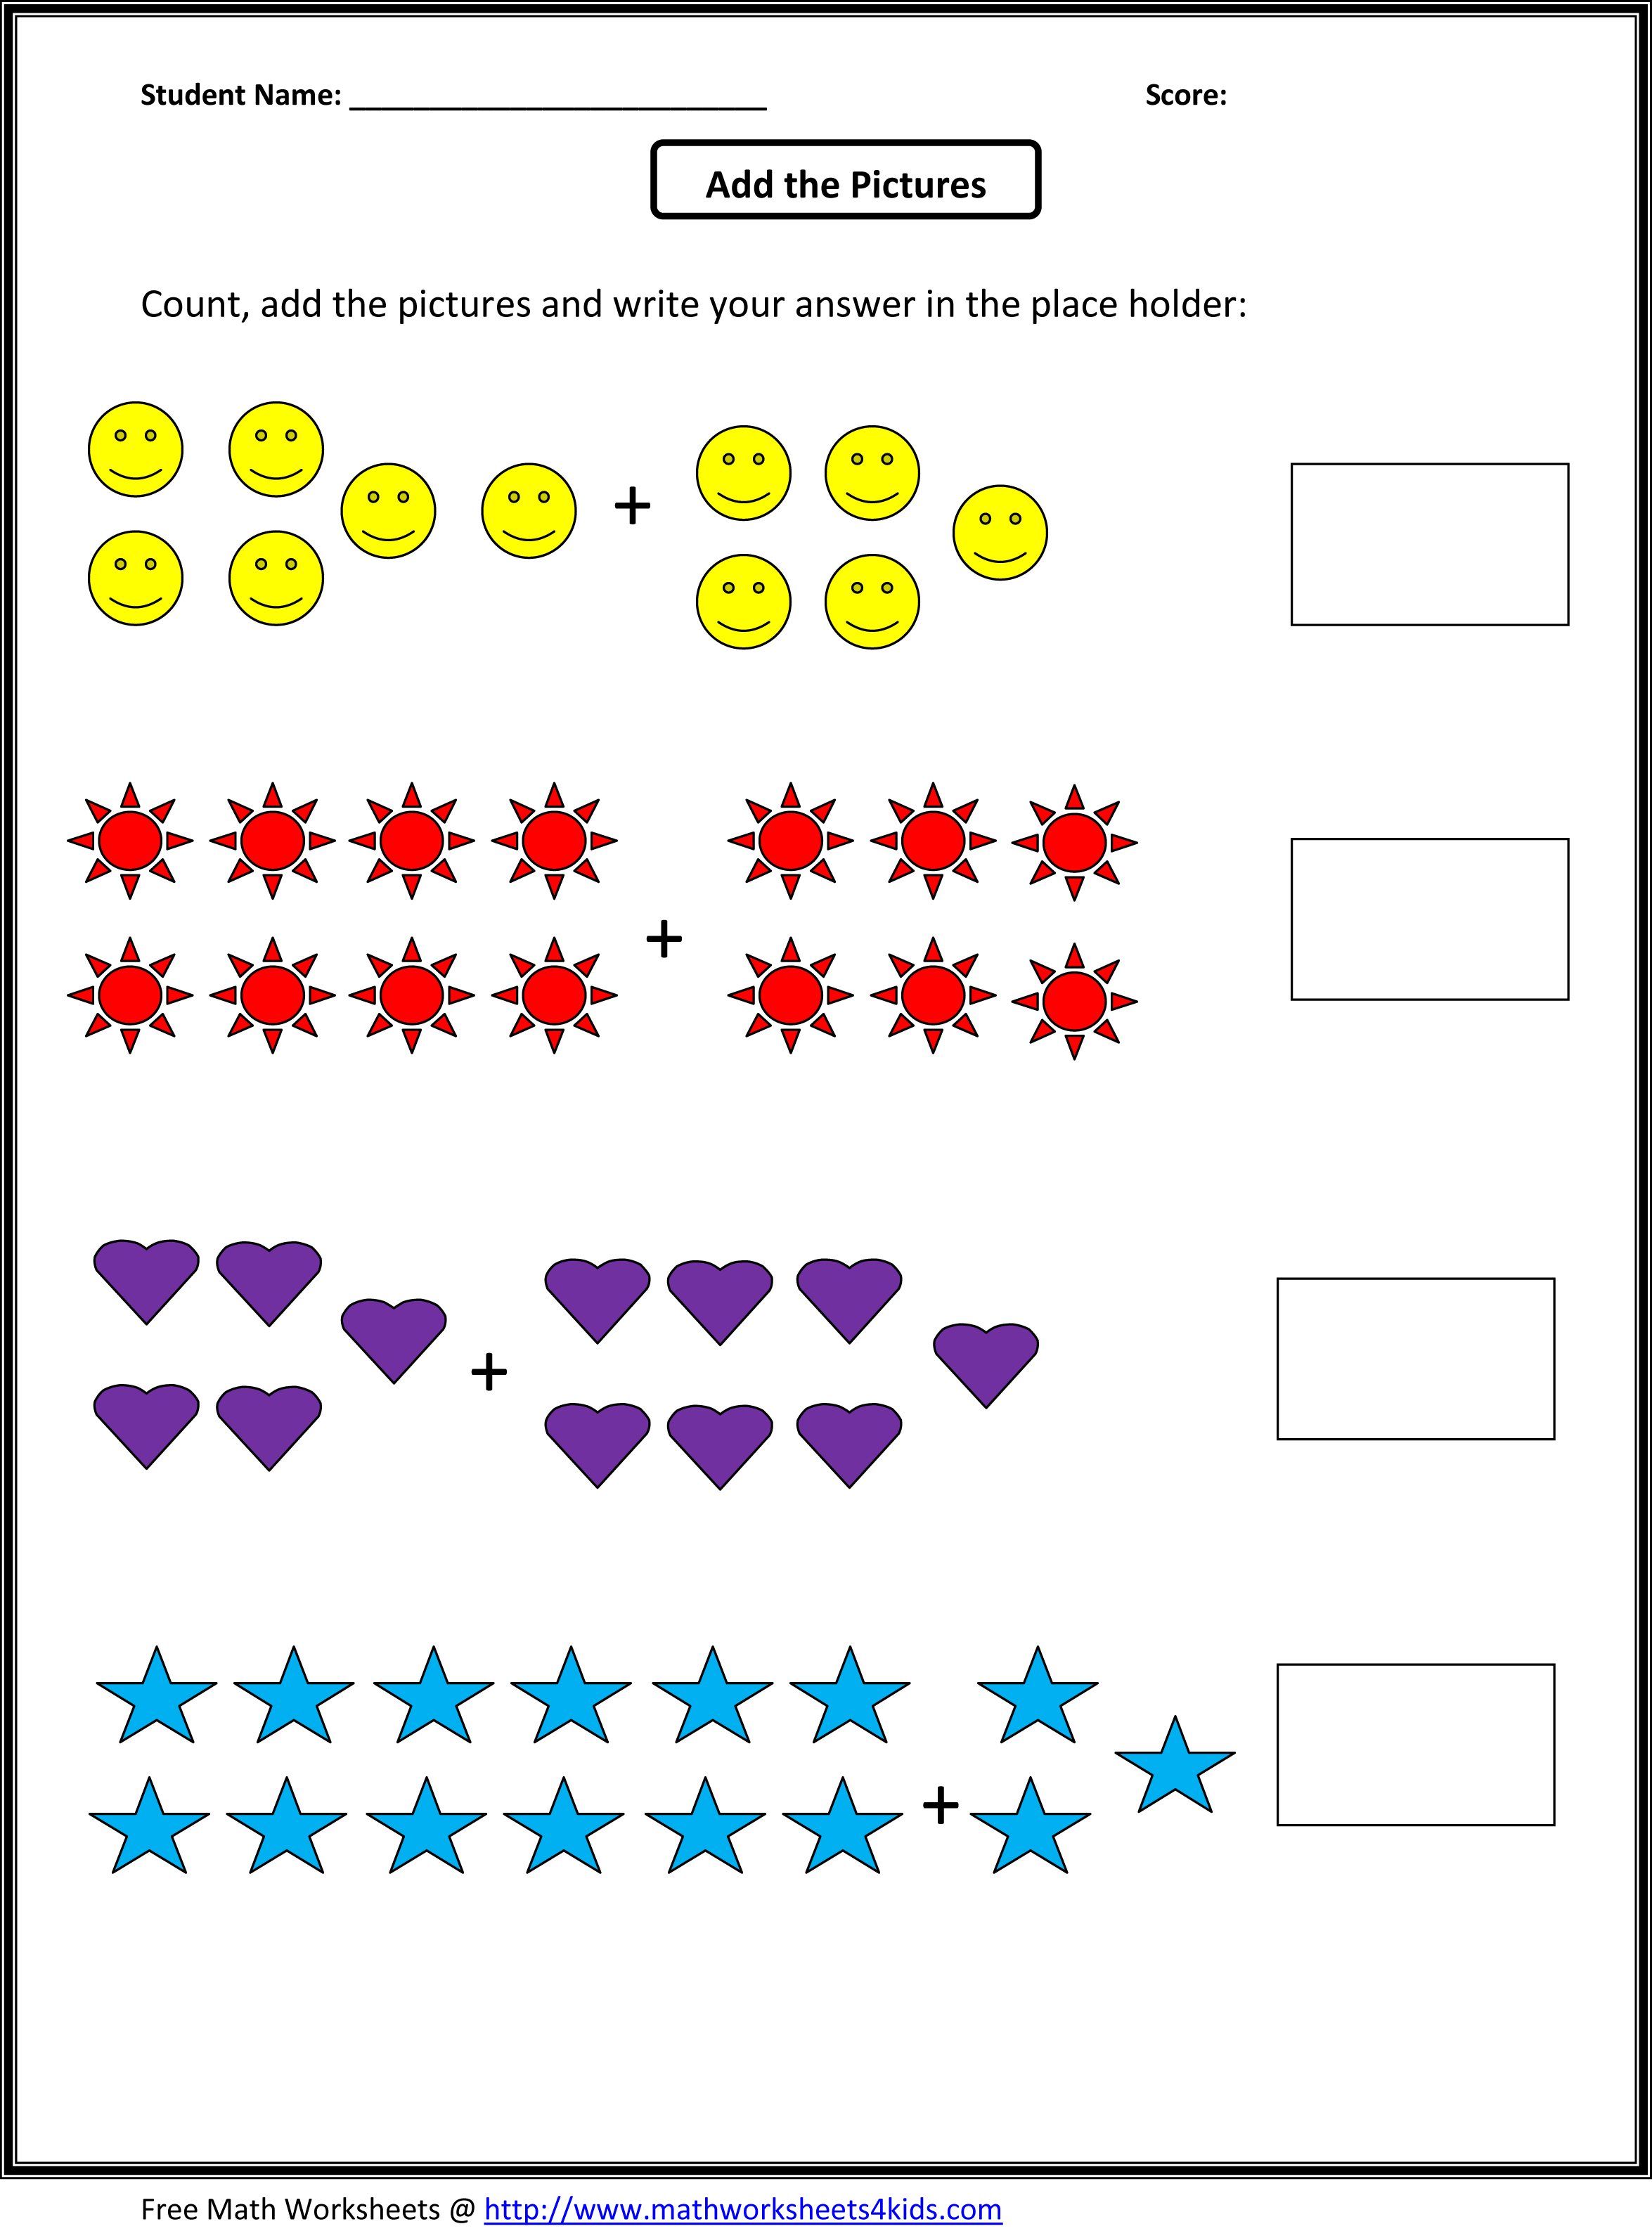 Proatmealus  Sweet Grade  Maths Worksheet  Reocurent With Fascinating Math Worksheets For St Grade Free  Reocurent With Agreeable Basic Measurement Worksheets Also Free Th Grade Language Arts Worksheets In Addition Multiplication Worksheet Single Digit And Free Th Grade Social Studies Worksheets As Well As Sentence Fragment Worksheets With Answers Additionally Khan Math Worksheets From Reocurentcom With Proatmealus  Fascinating Grade  Maths Worksheet  Reocurent With Agreeable Math Worksheets For St Grade Free  Reocurent And Sweet Basic Measurement Worksheets Also Free Th Grade Language Arts Worksheets In Addition Multiplication Worksheet Single Digit From Reocurentcom